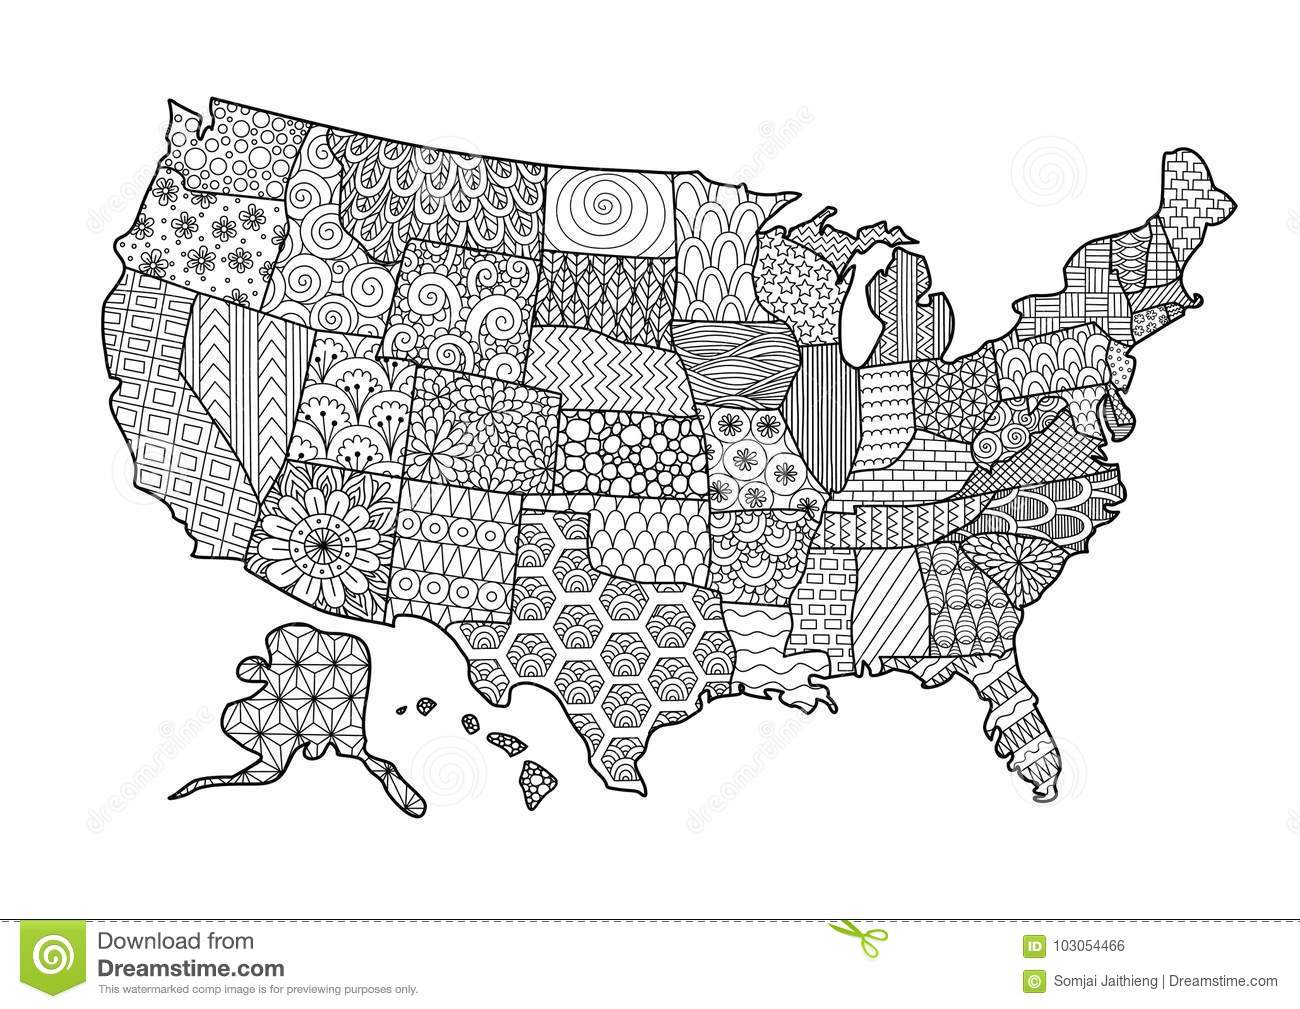 Coloring Usa Map.Floral Usa Map For Design Element And Adult Coloring Book Page